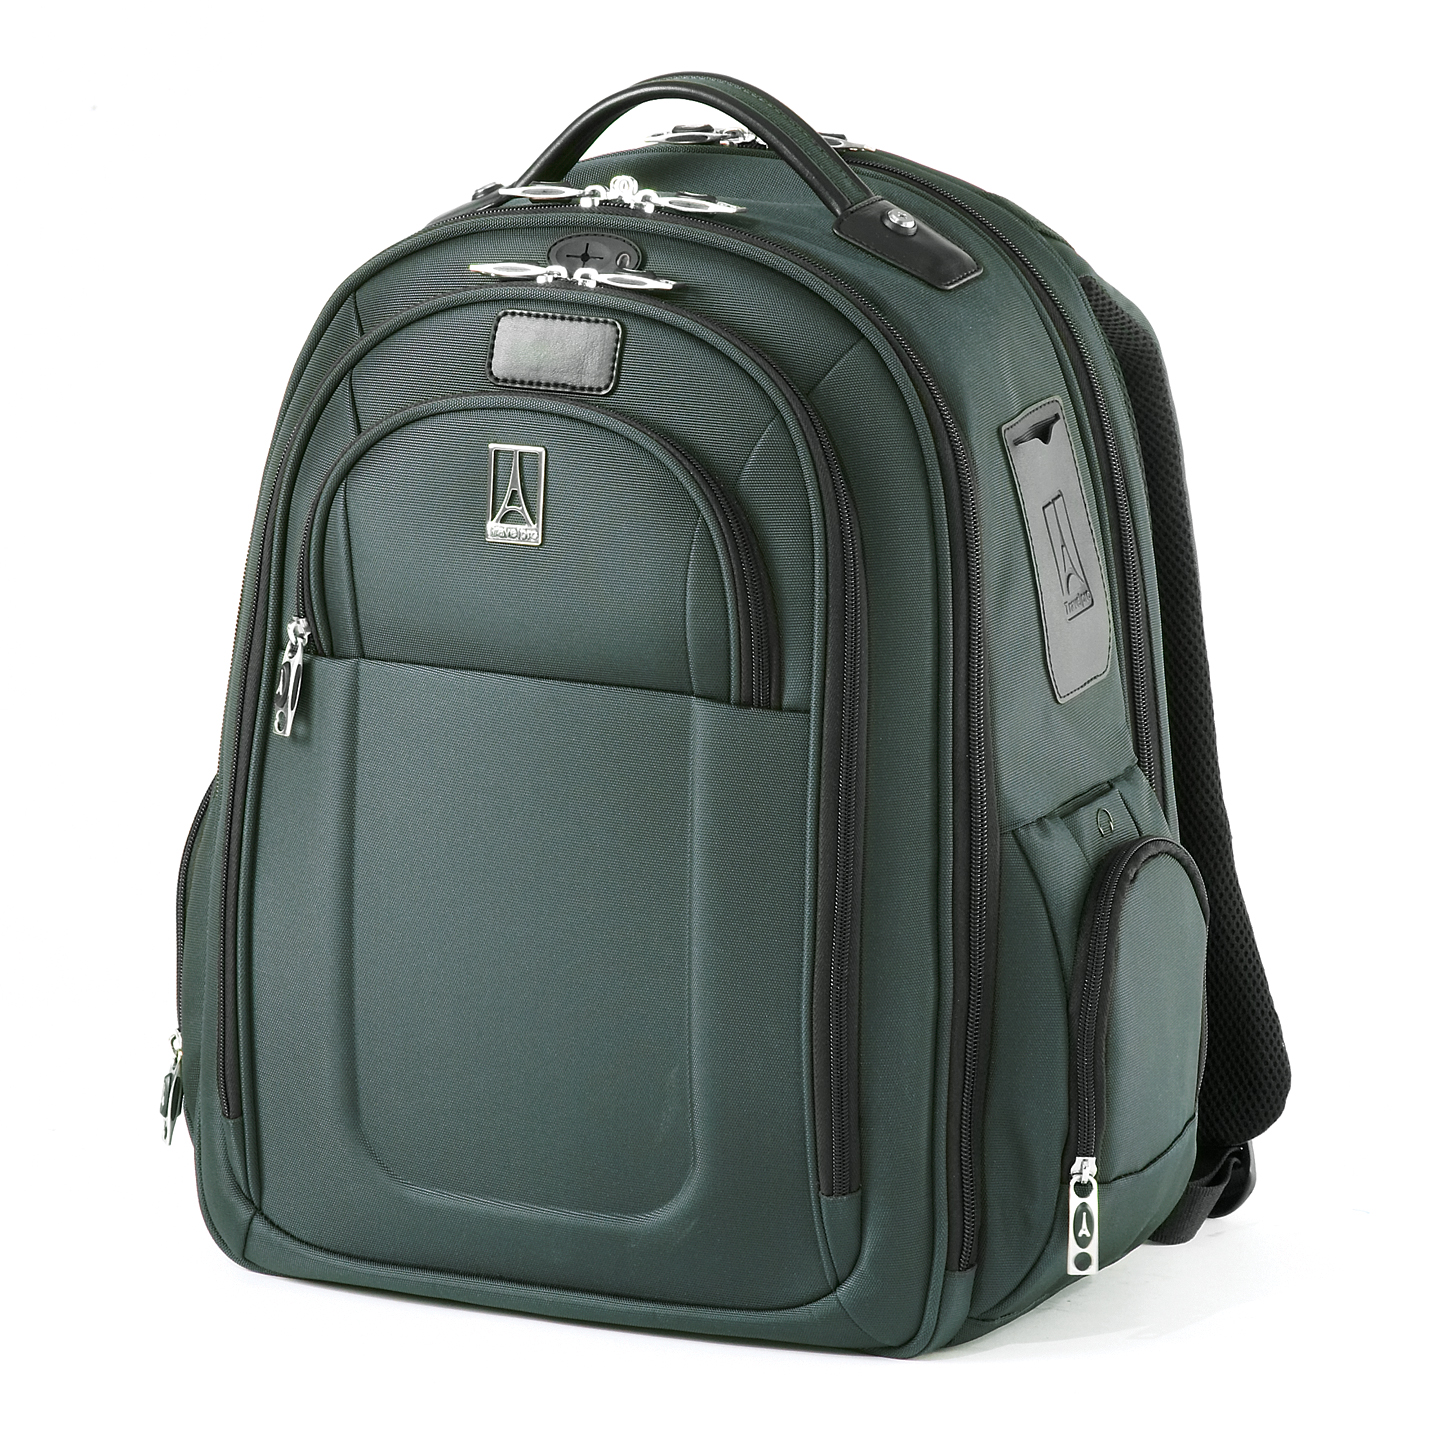 Travelpro Crew 8 Business Backpack - Travelpro Luggage Blog ...